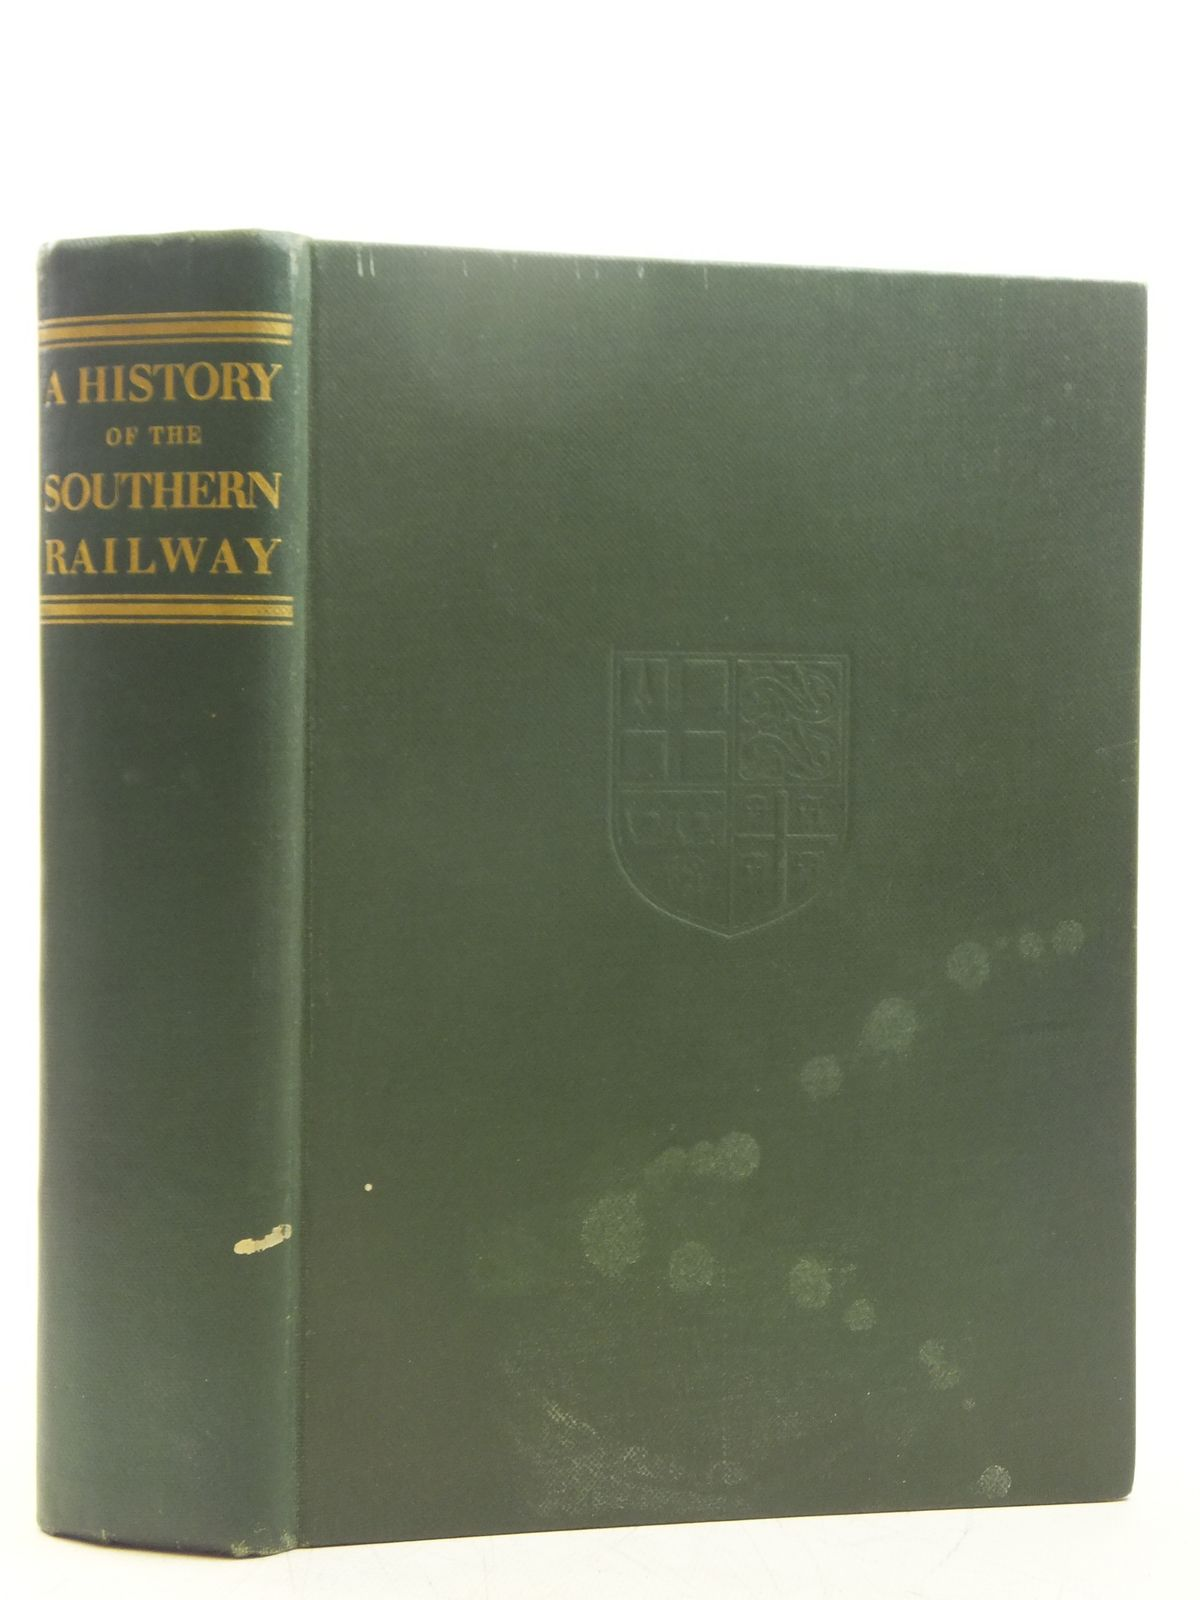 Photo of A HISTORY OF THE SOUTHERN RAILWAY written by Marshall, C.F. Dendy published by Southern Railway Company (STOCK CODE: 2118720)  for sale by Stella & Rose's Books